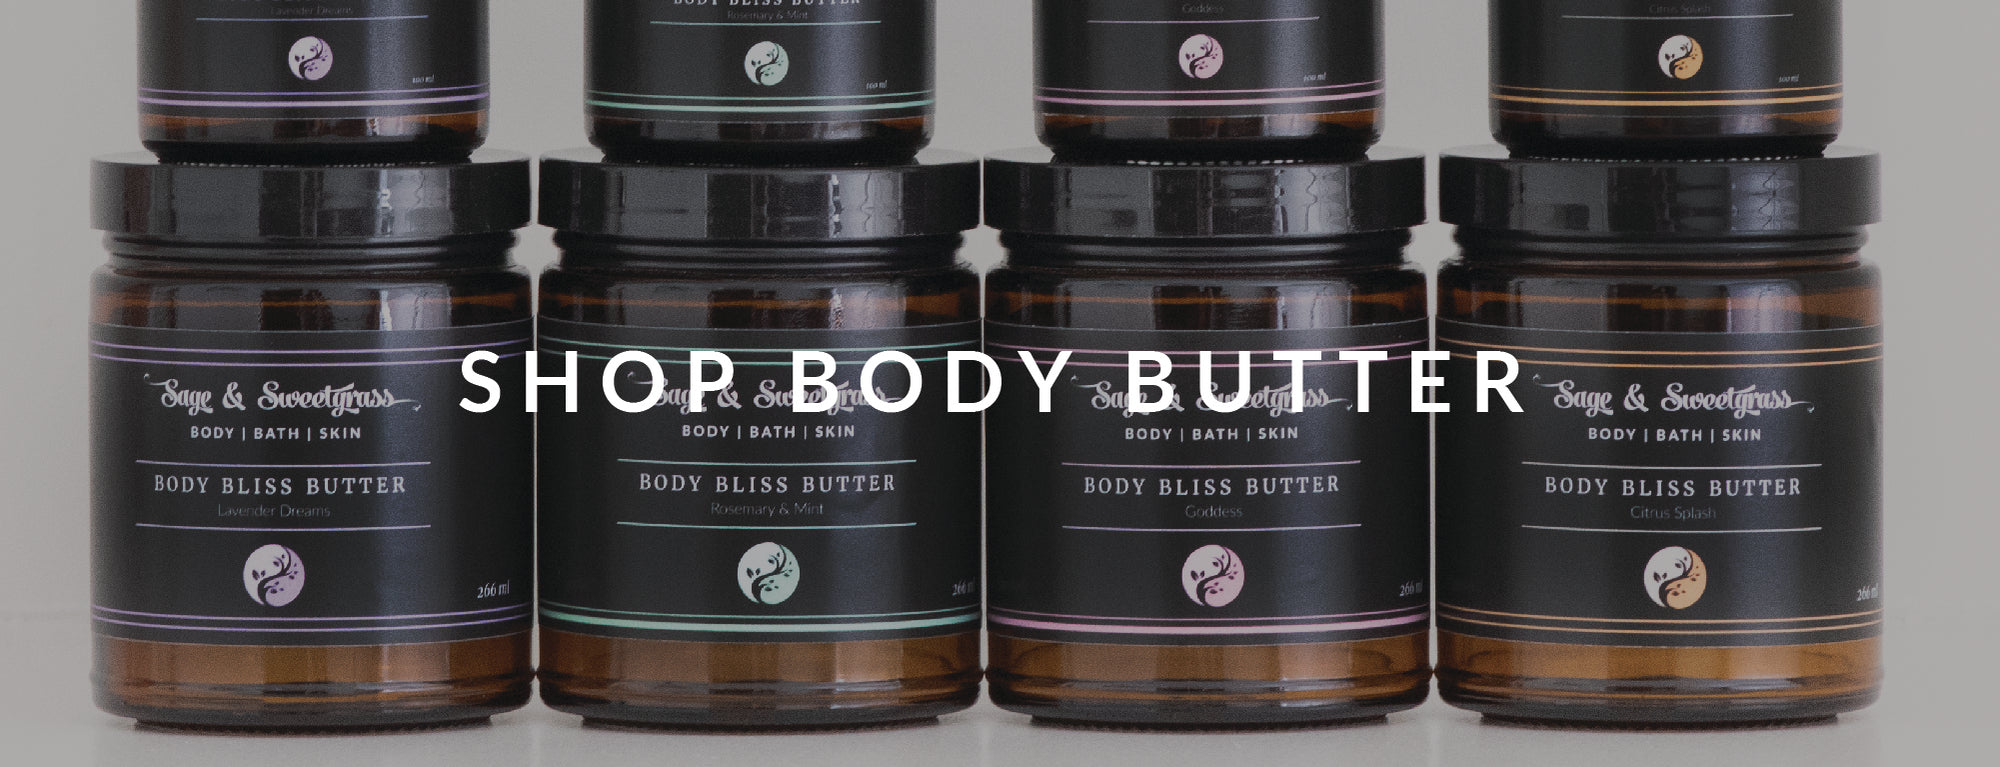 Body Bliss Butter